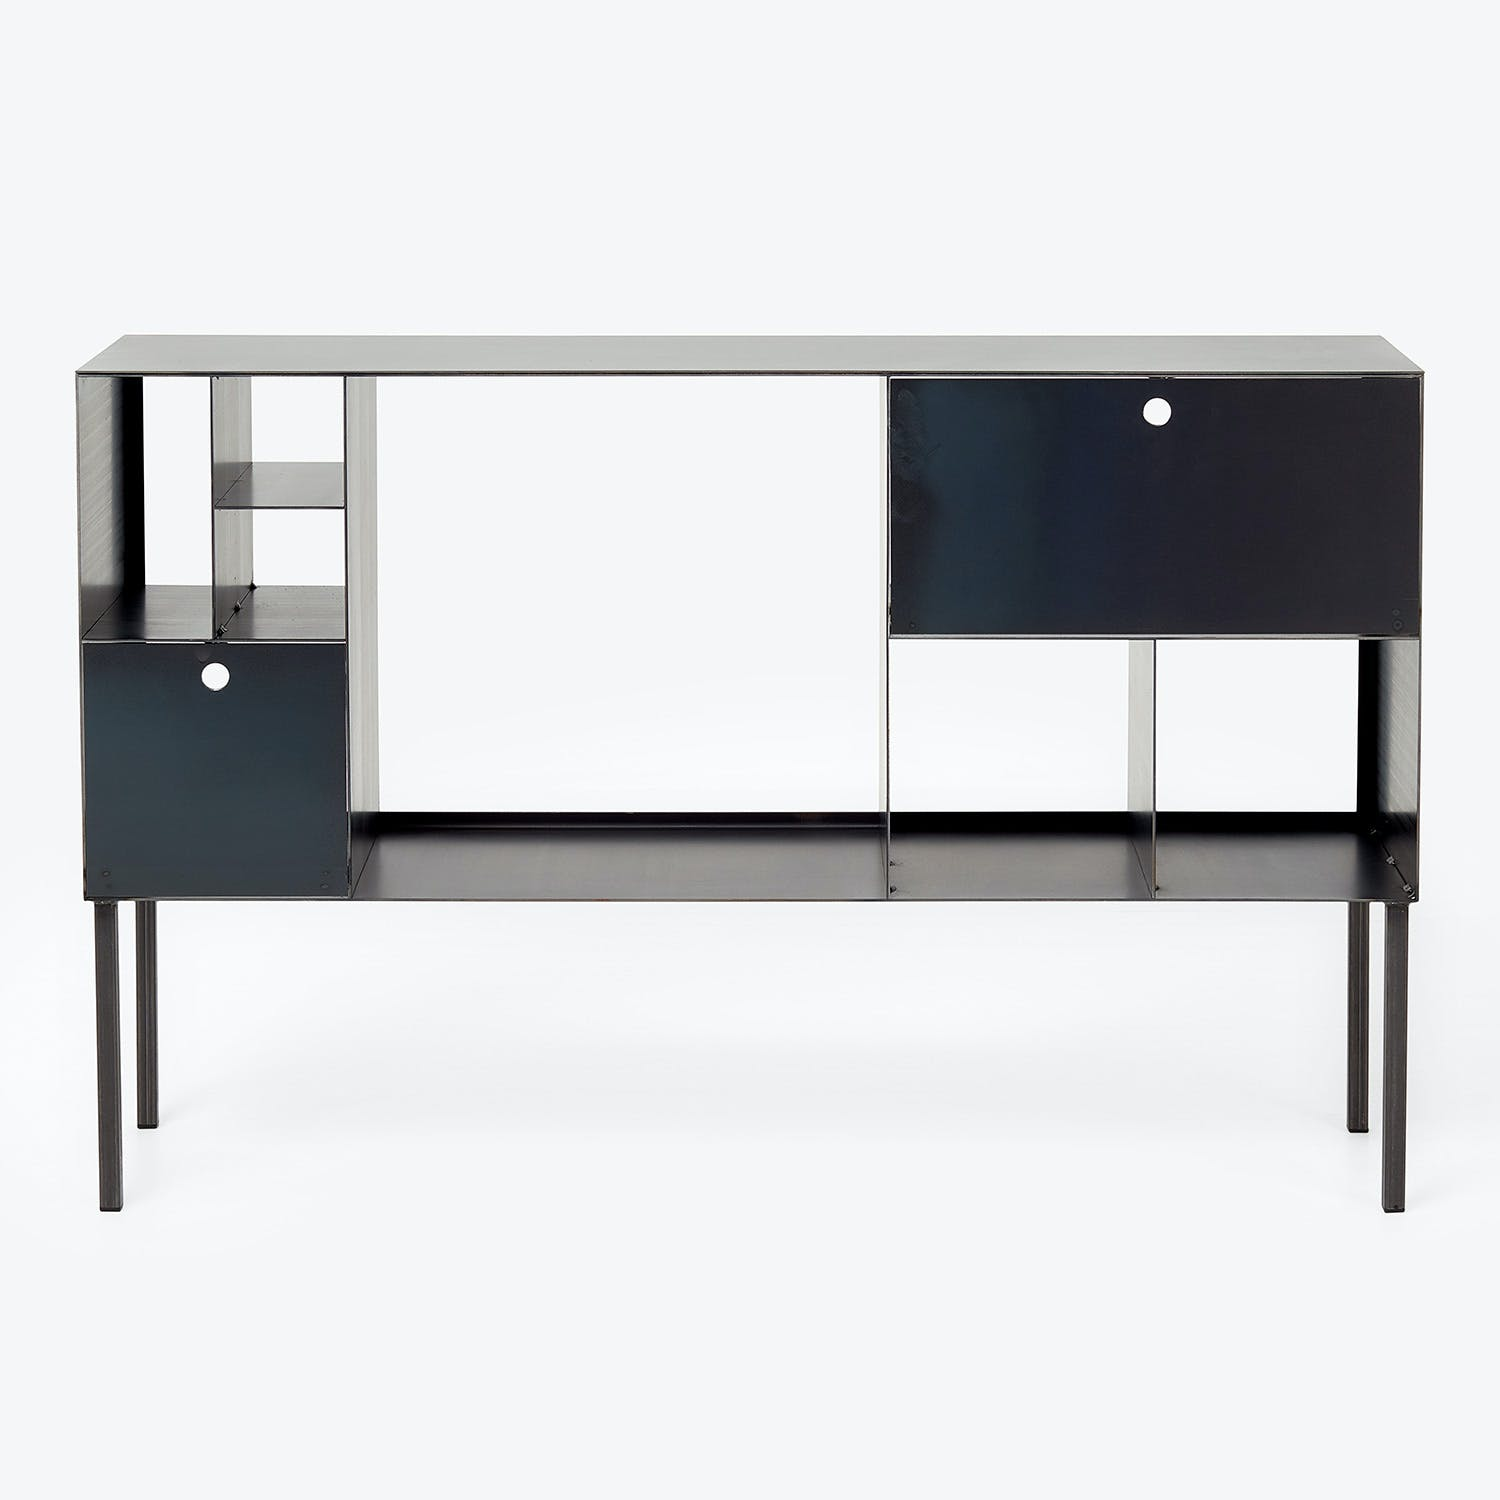 Product Image - Flatiron-Wrought Cubic Steel Console